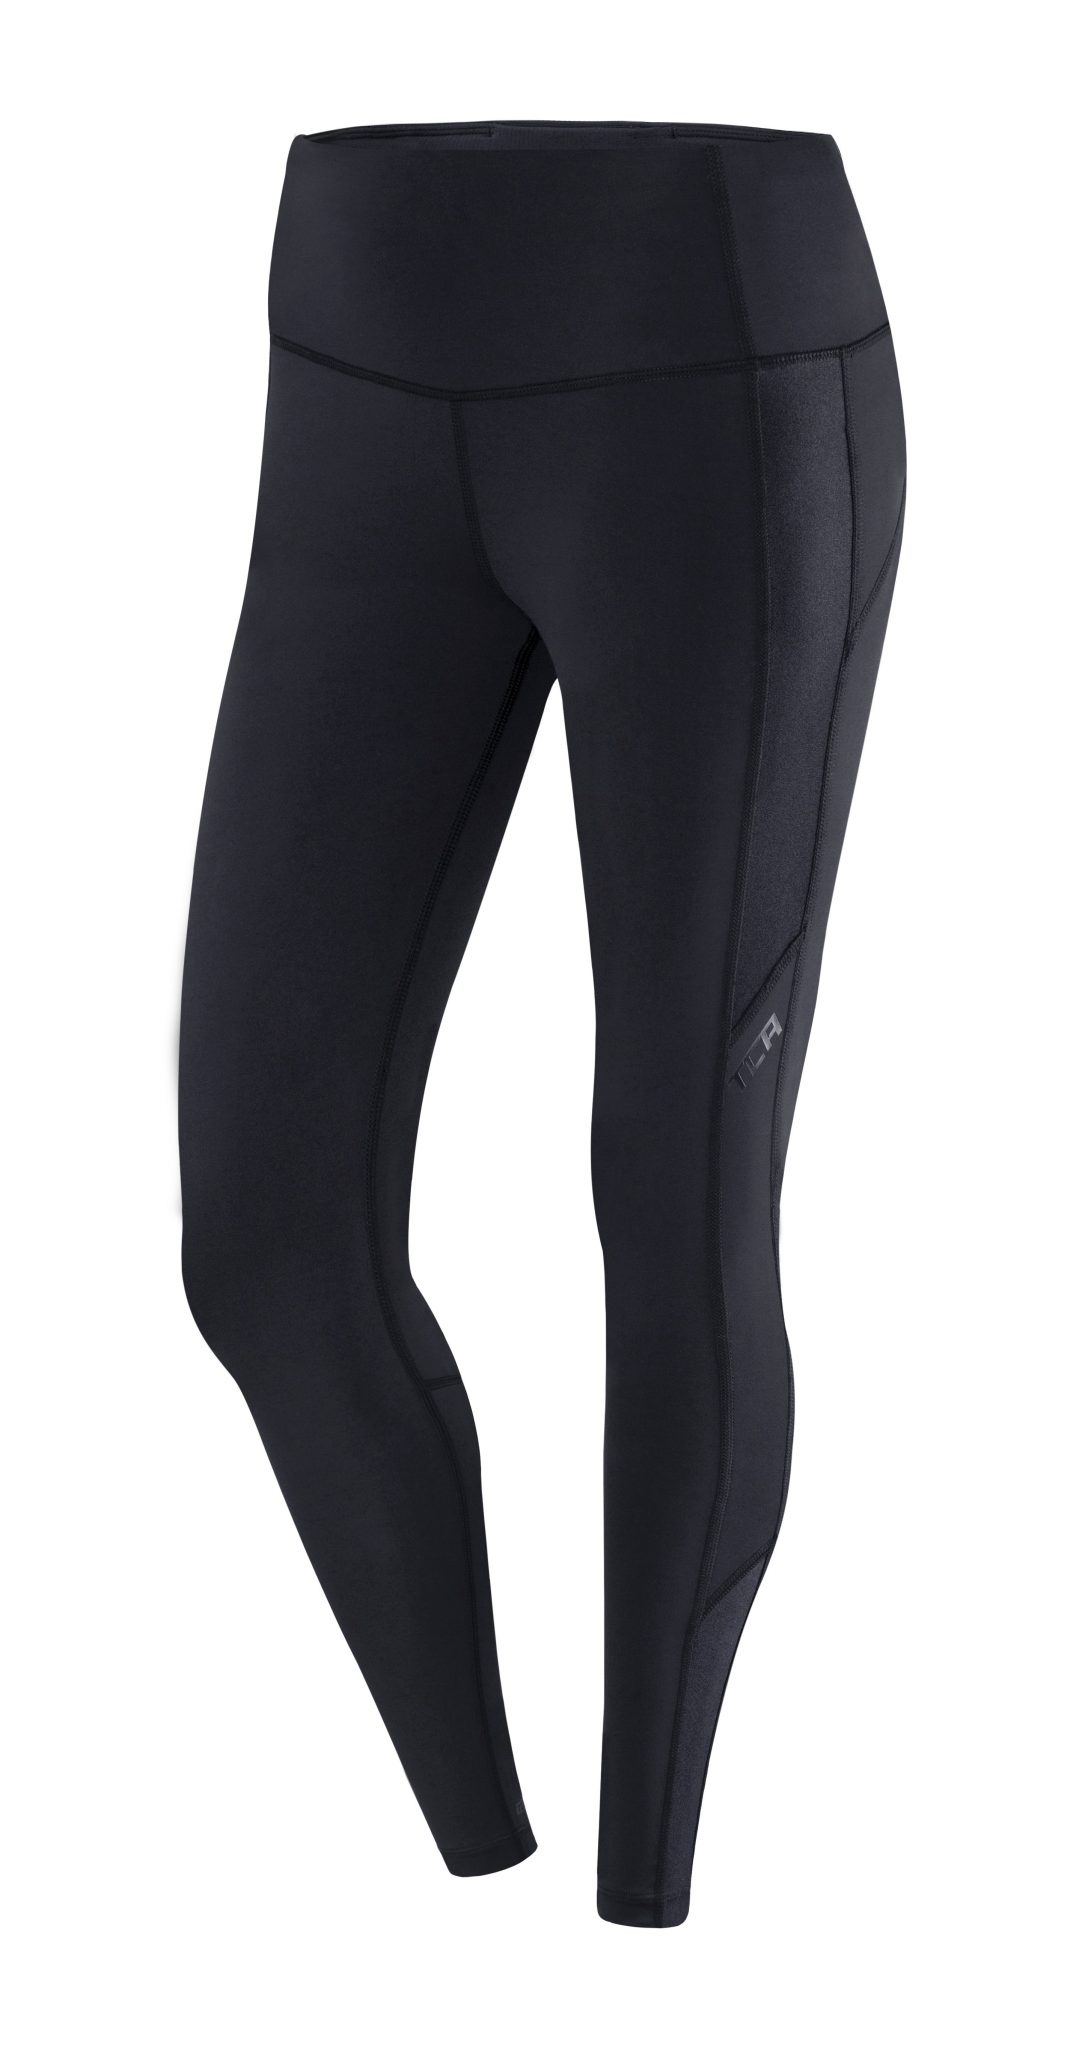 Relentless 7-8 Legging - Anthracite - £39 - TCA